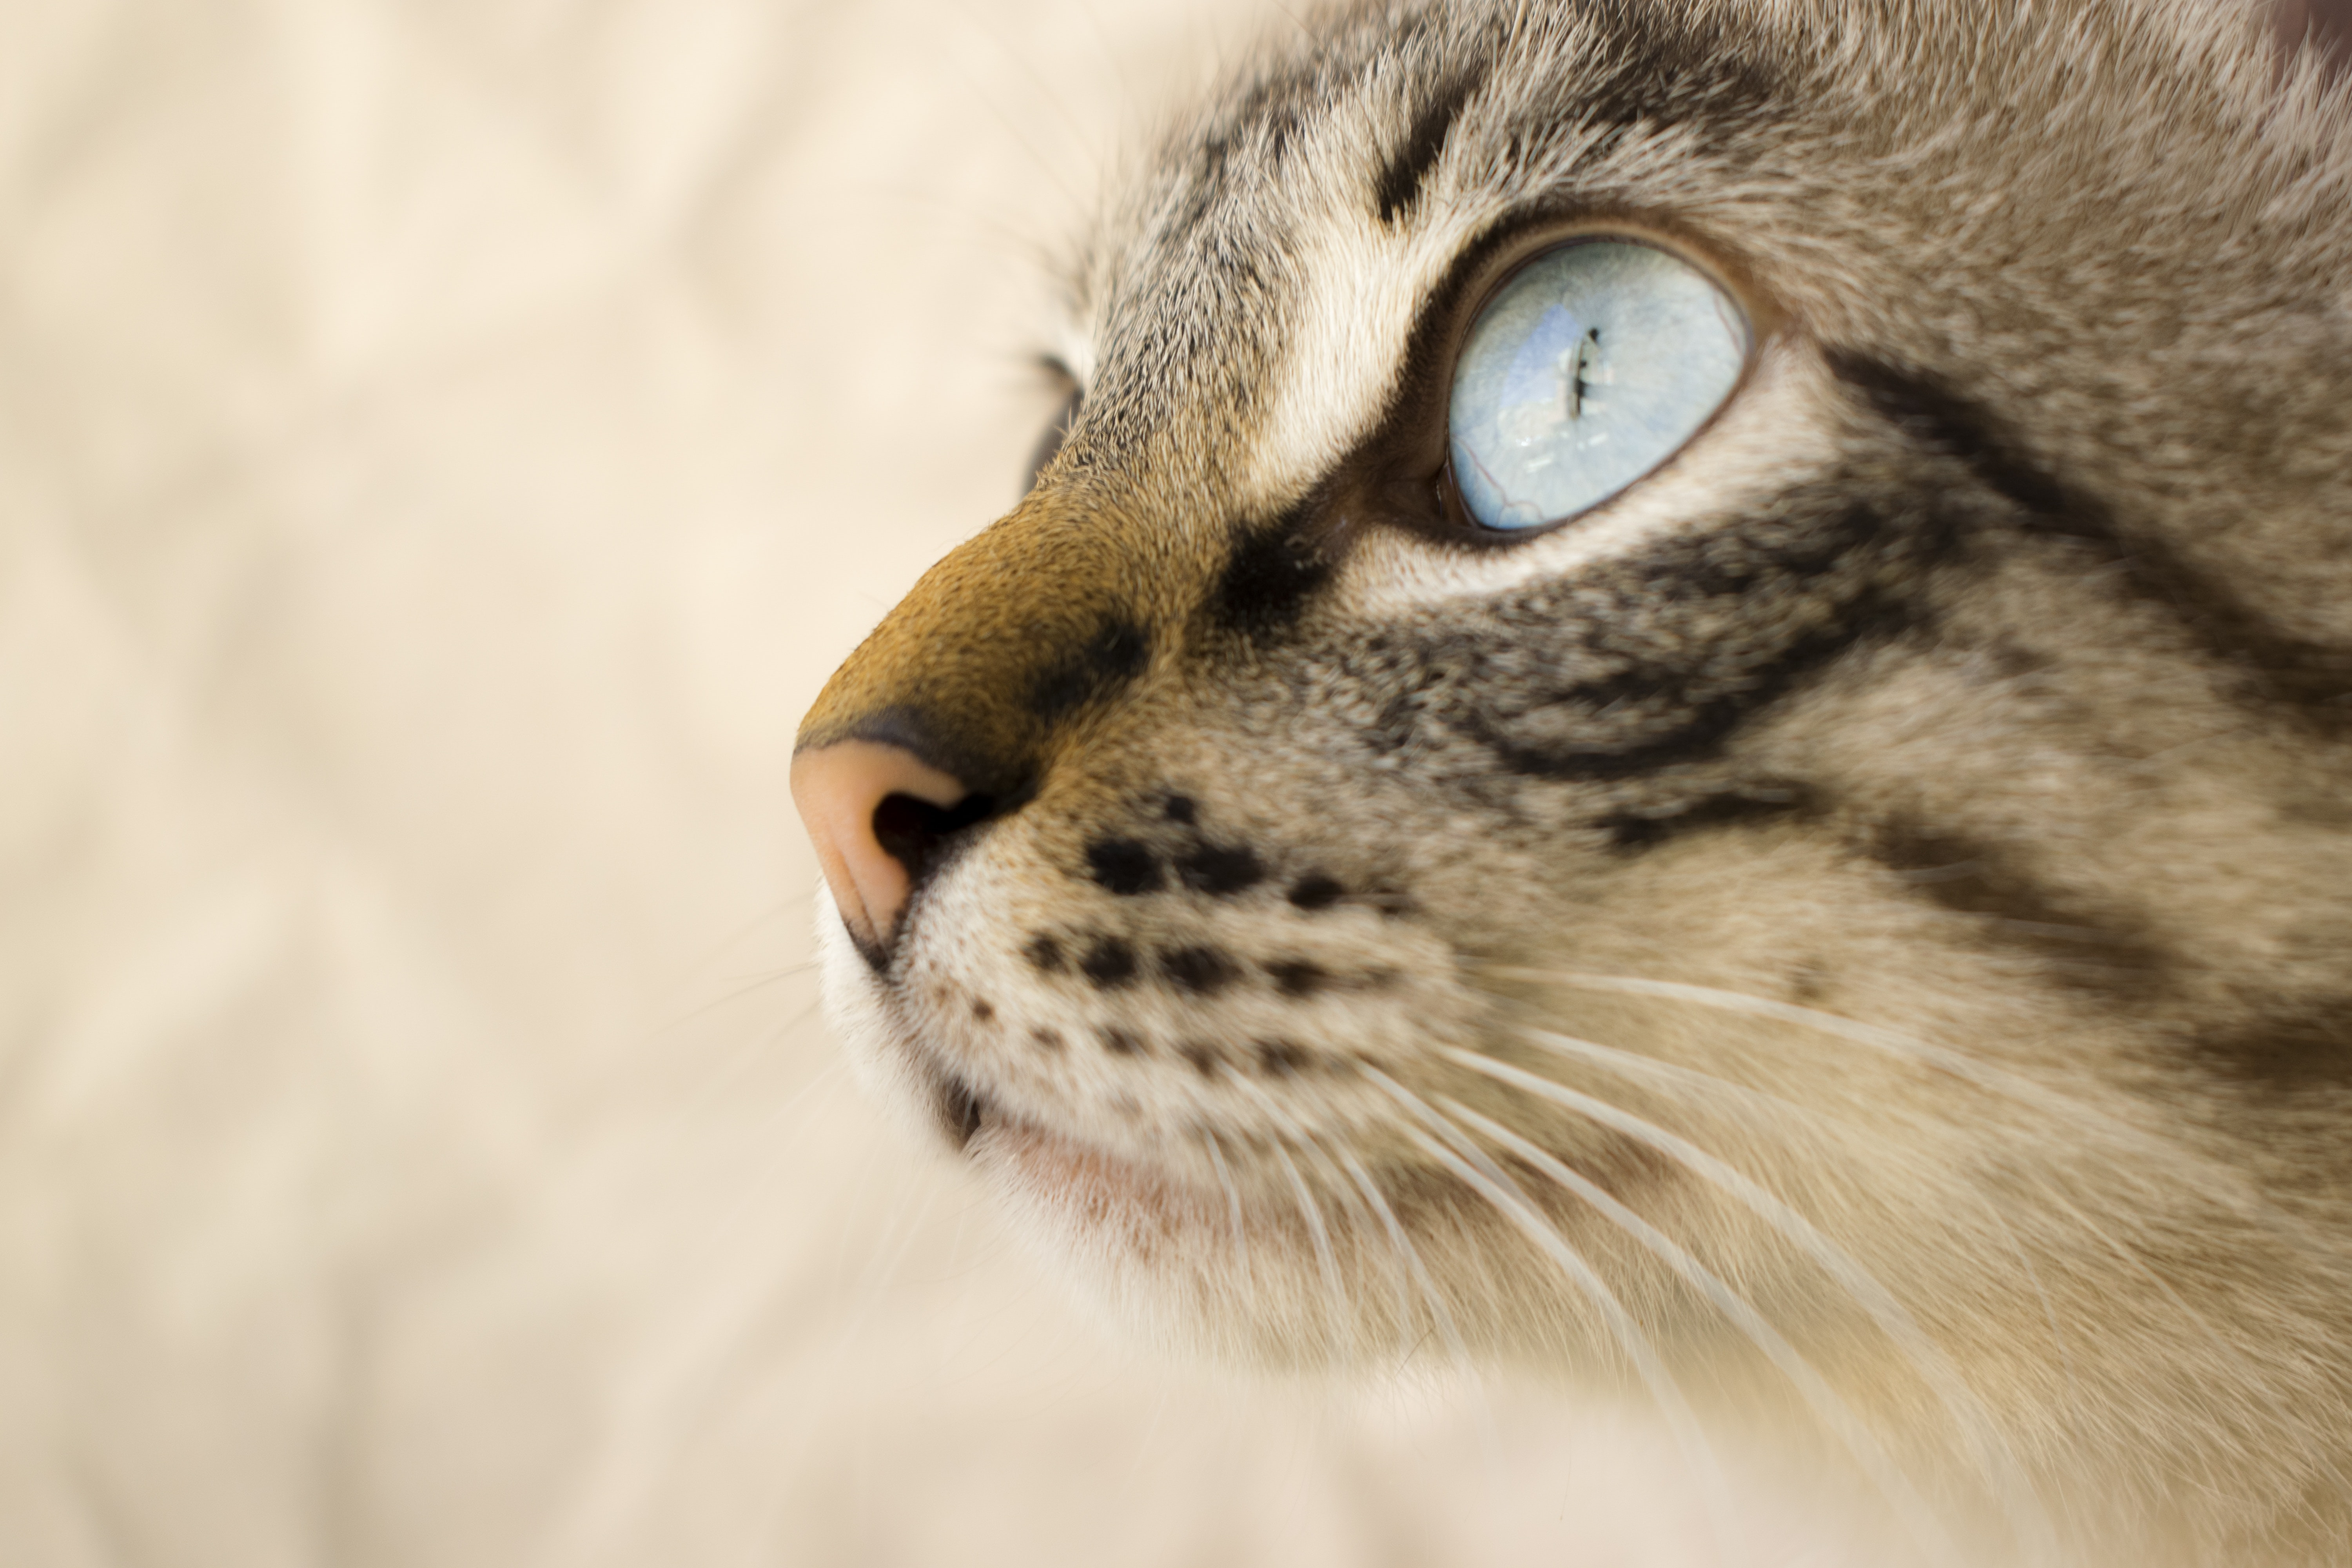 Close-up of a domestic cat's large blue eye